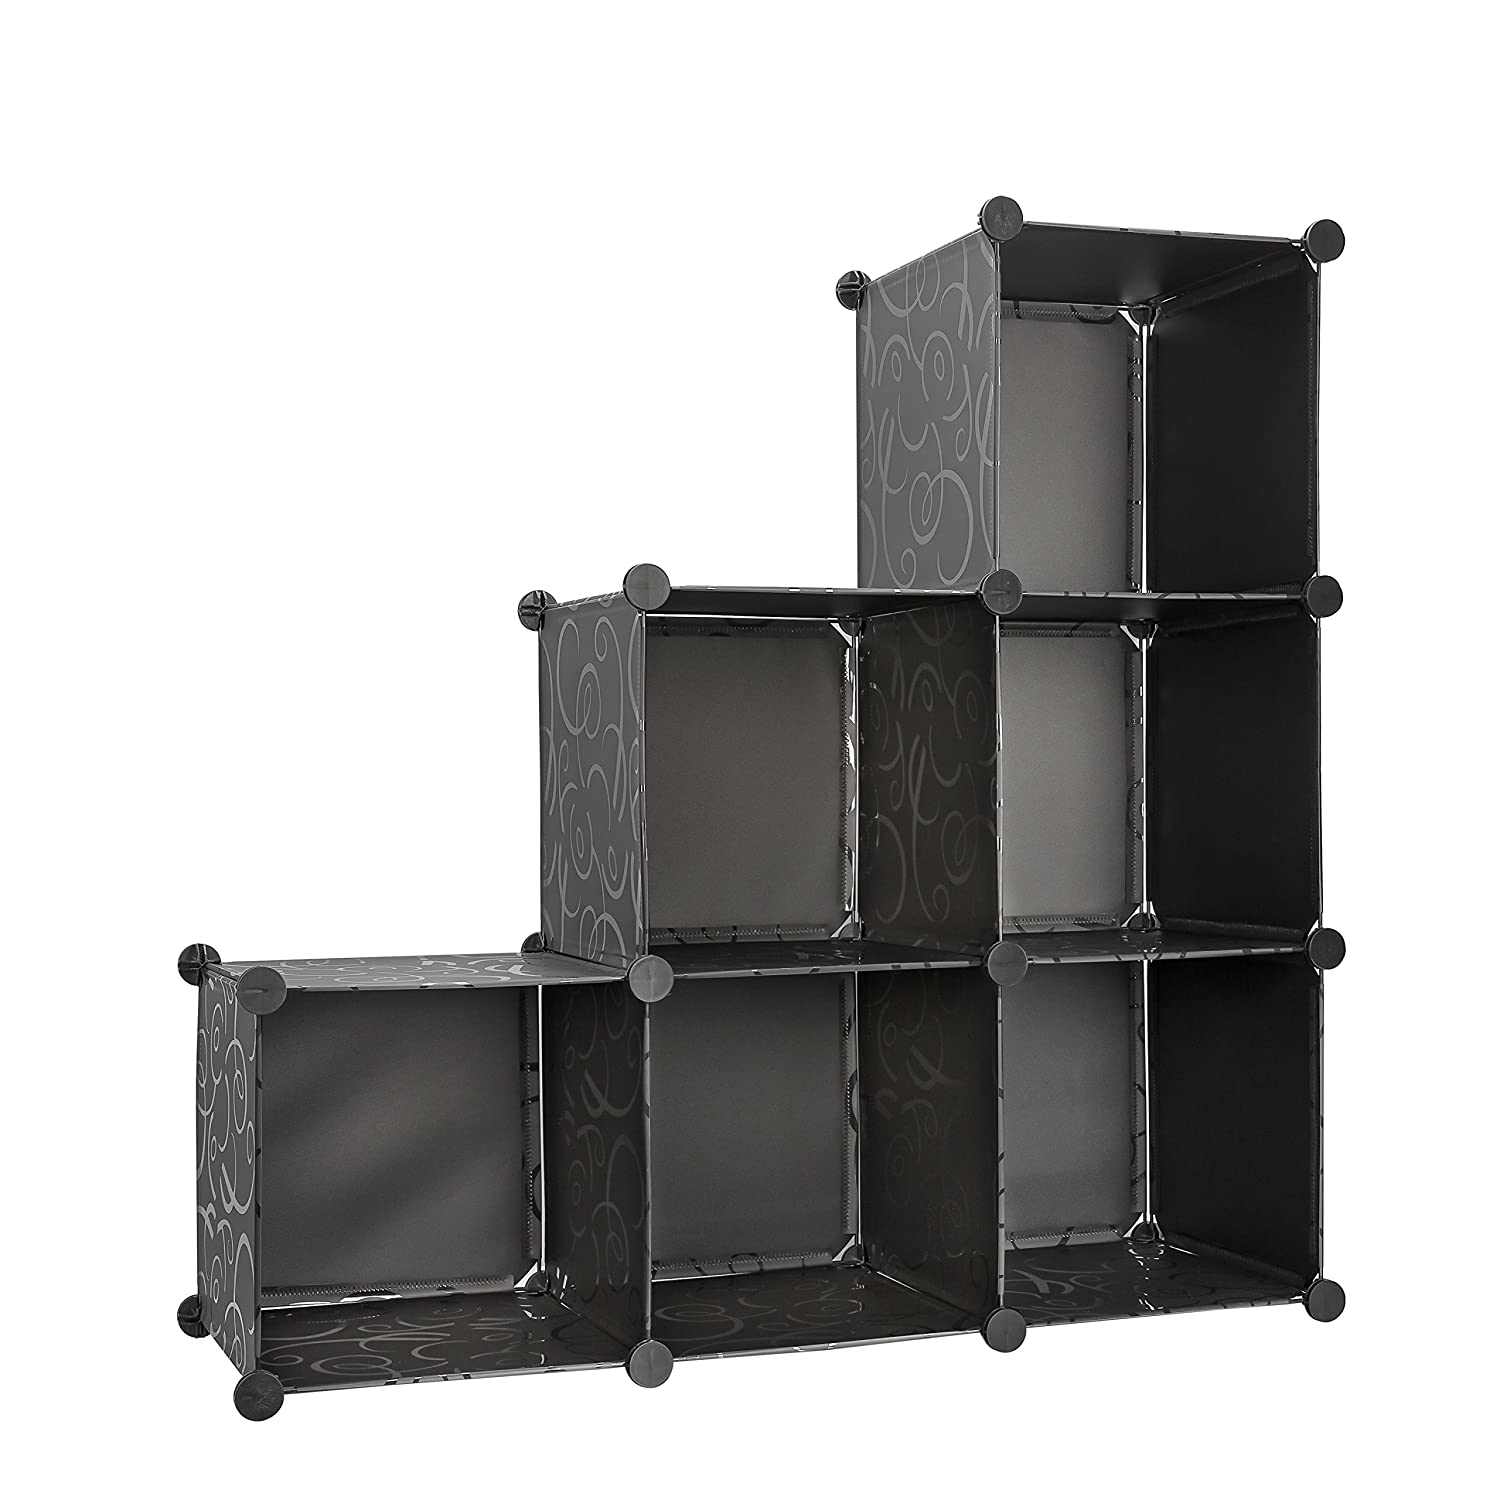 Attractive Storage Cube Organizer Bins with 3 Tiers of Bookcase Modular Cubicals 6 Cubes Make Great Organizer for Closet Books Strong Lightweight LUXENNO 4335516675 Arts /& Crafts while Minimizing Clutter